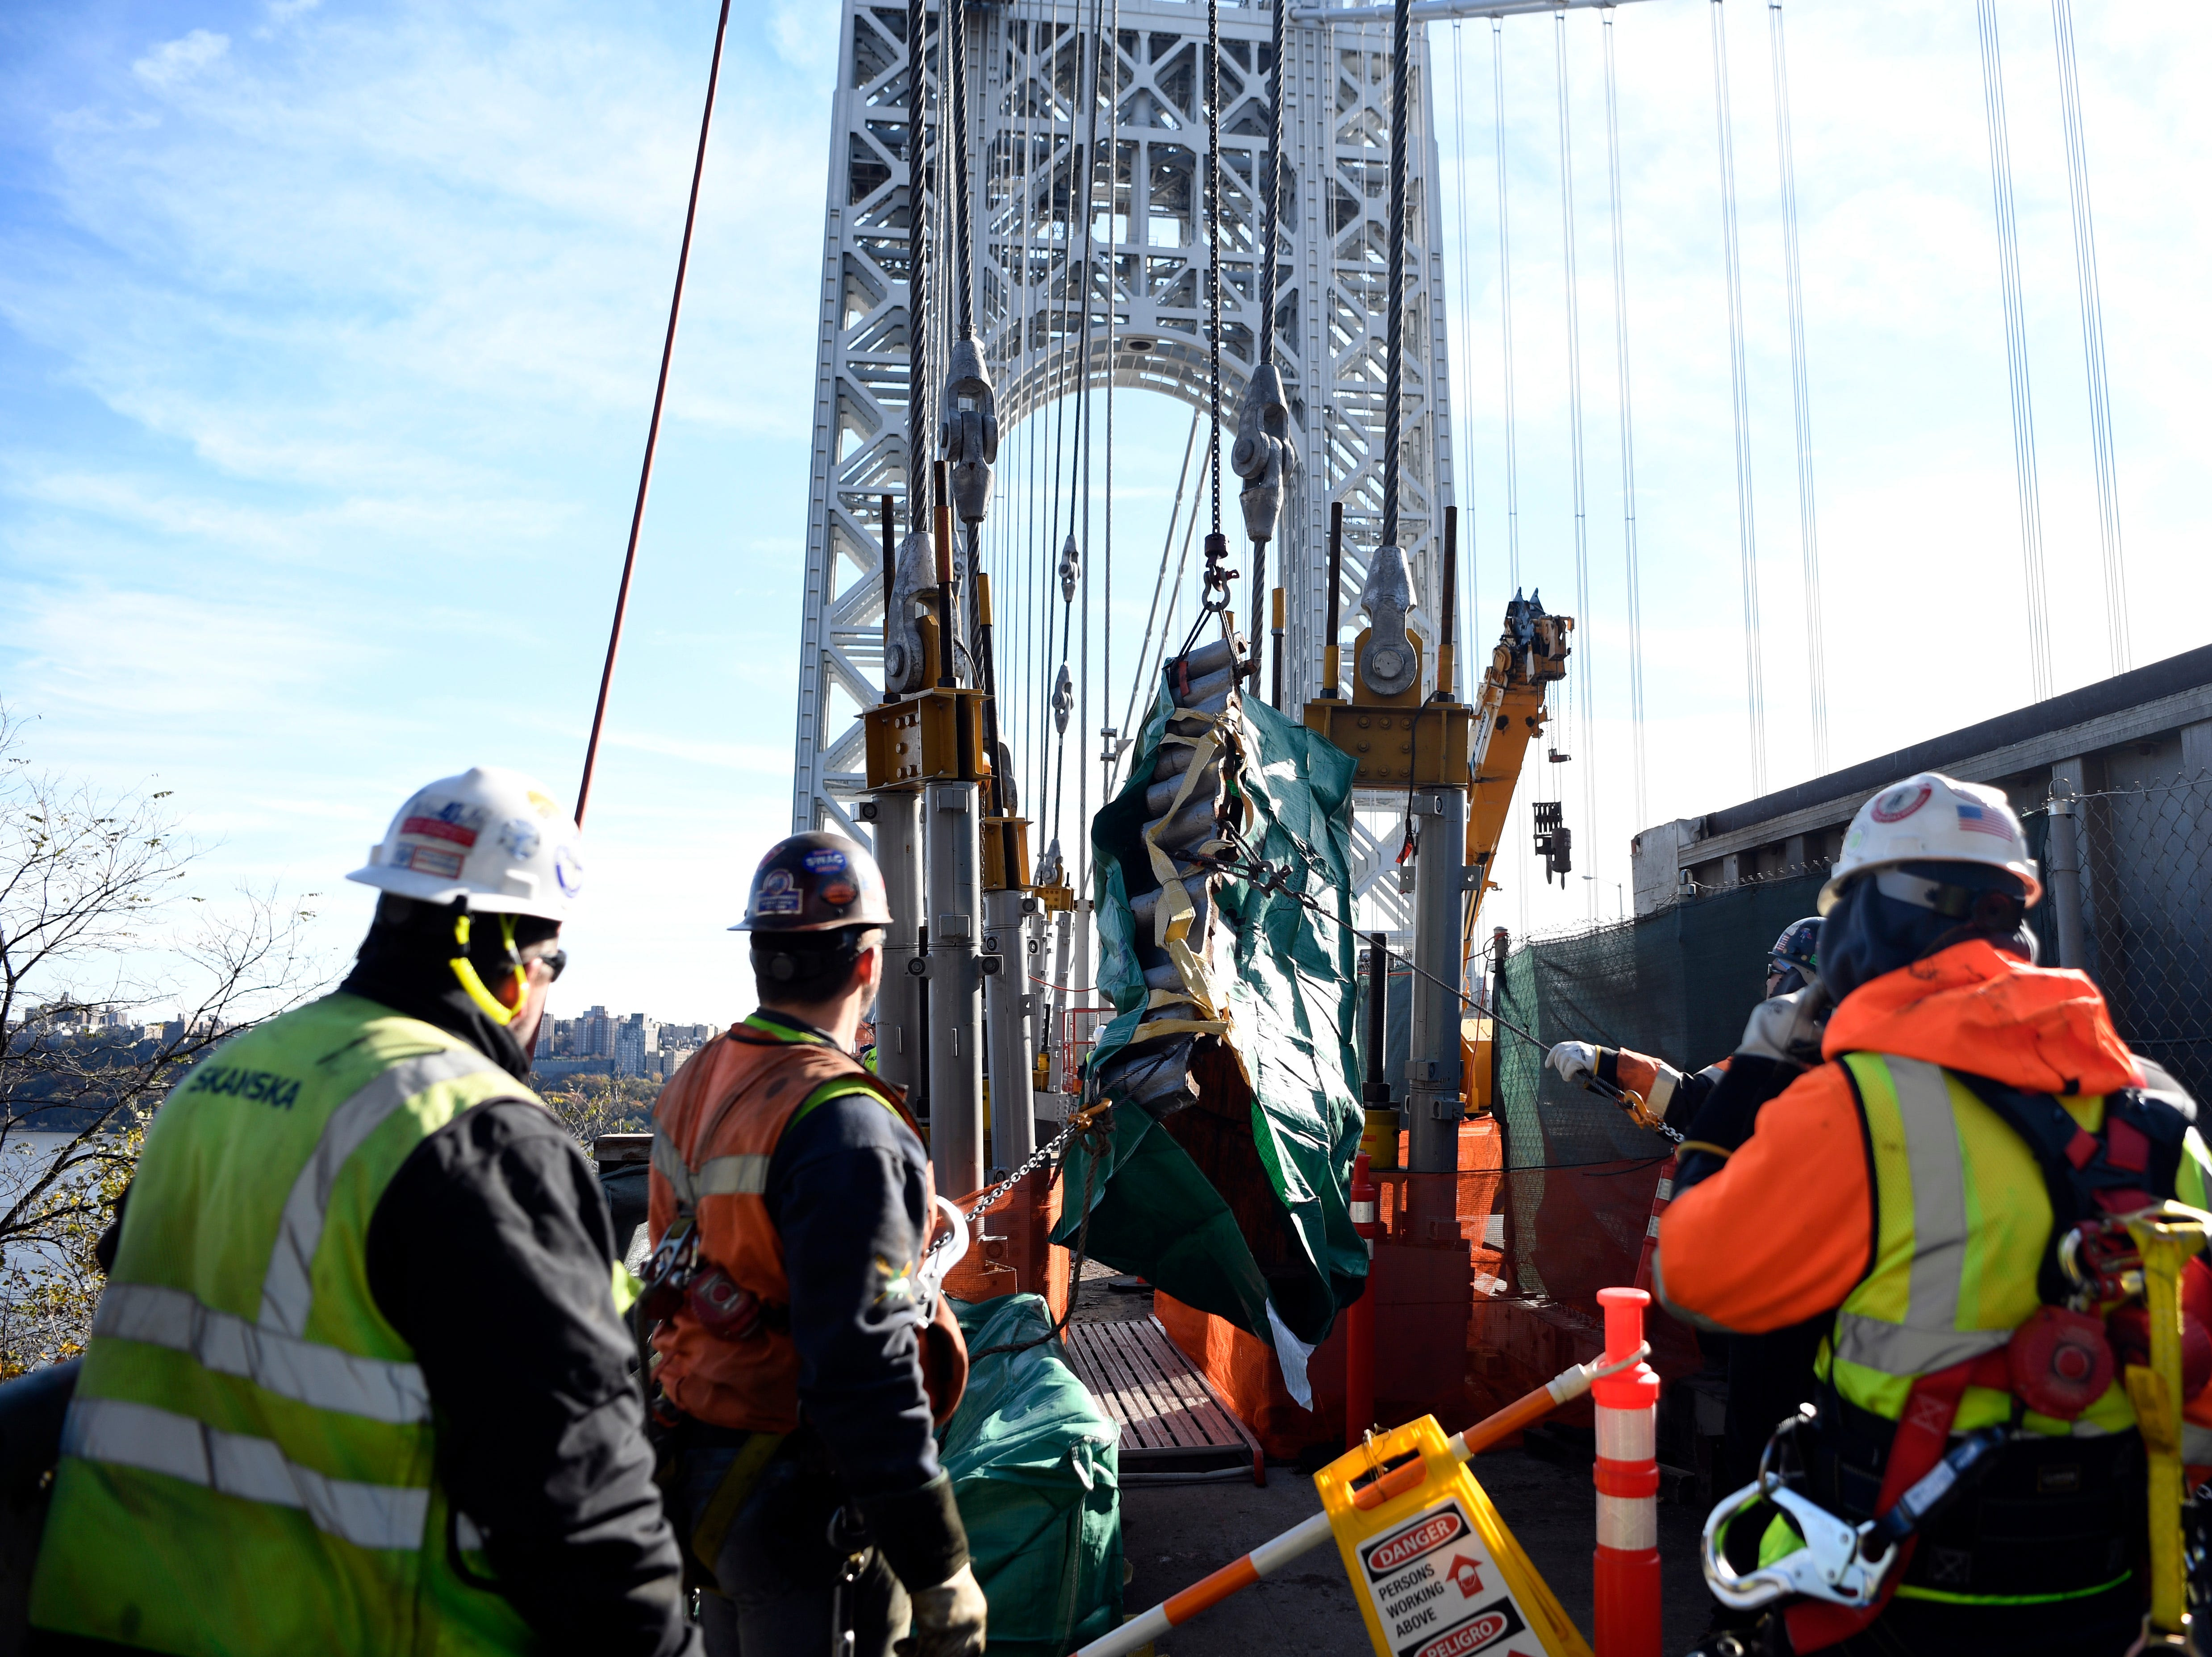 Construction workers lower down cables to be rehabilitated as a part of the Port Authority's program to rehab and replace cables and suspender ropes on the George Washington Bridge on Wednesday, Nov. 14, 2018, in Fort Lee.